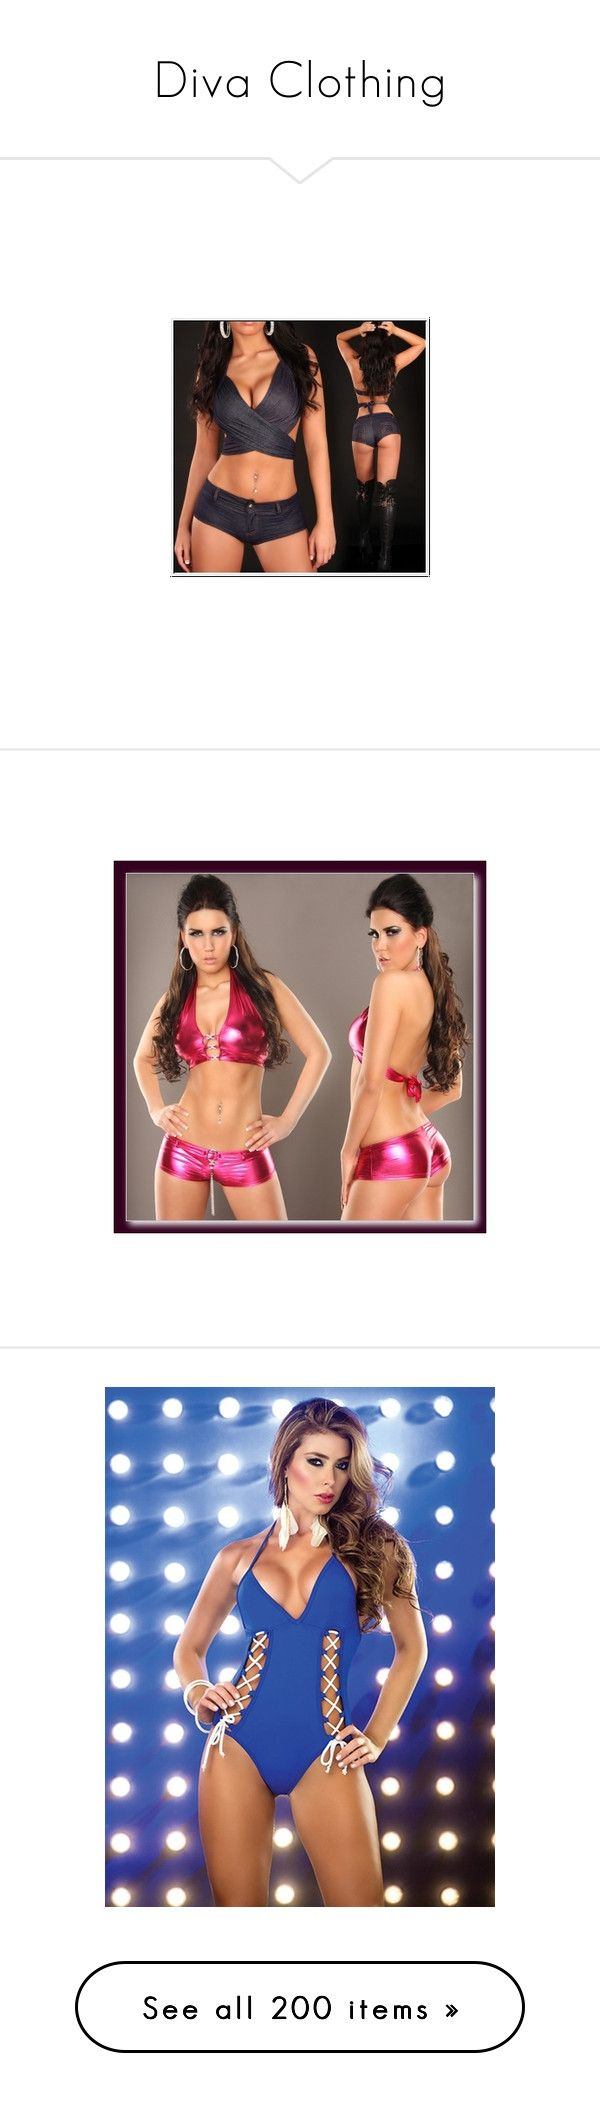 """""""Diva Clothing"""" by dead-sea-princess ❤ liked on Polyvore featuring WWE, divas, wrestling, outfits, attire, costumes, wrestling gear, attires, diva outfit and wrestling attire"""